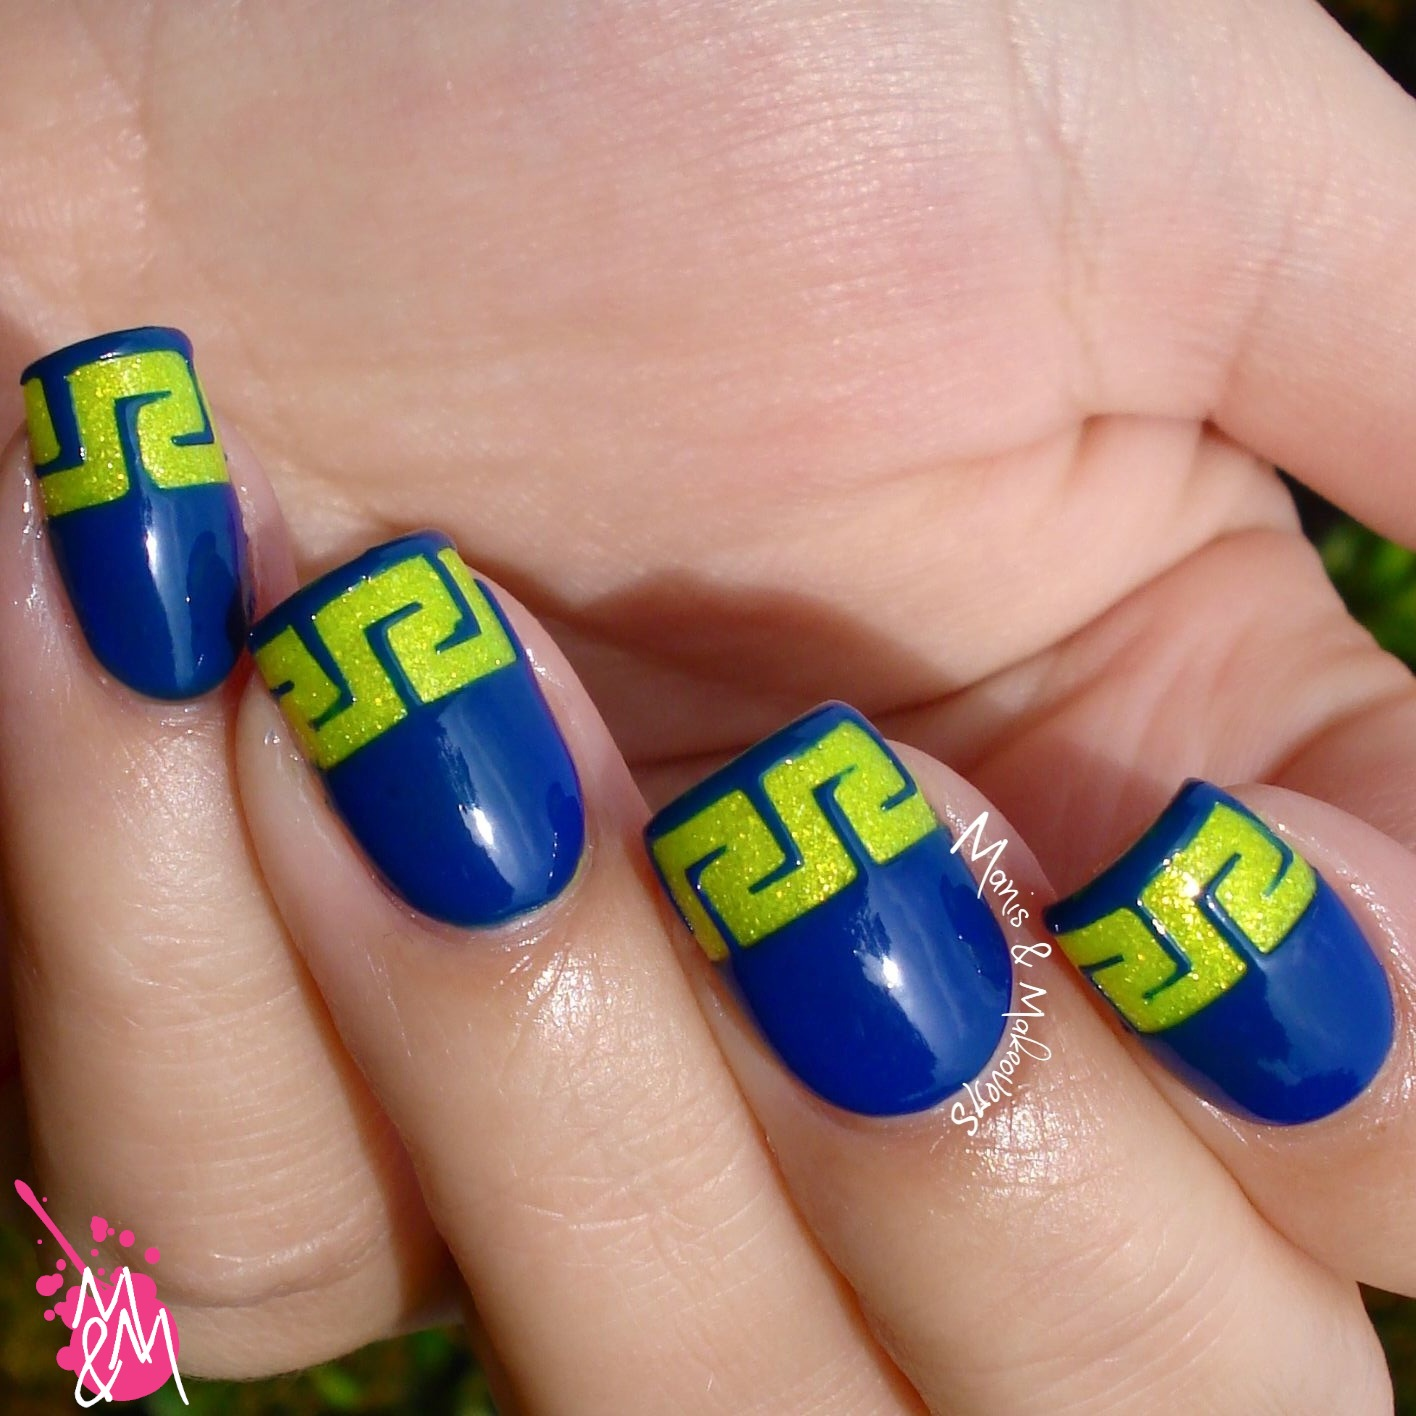 Manis & Makeovers: Neon Greek with Neverland Nail Vinyls pt. 3